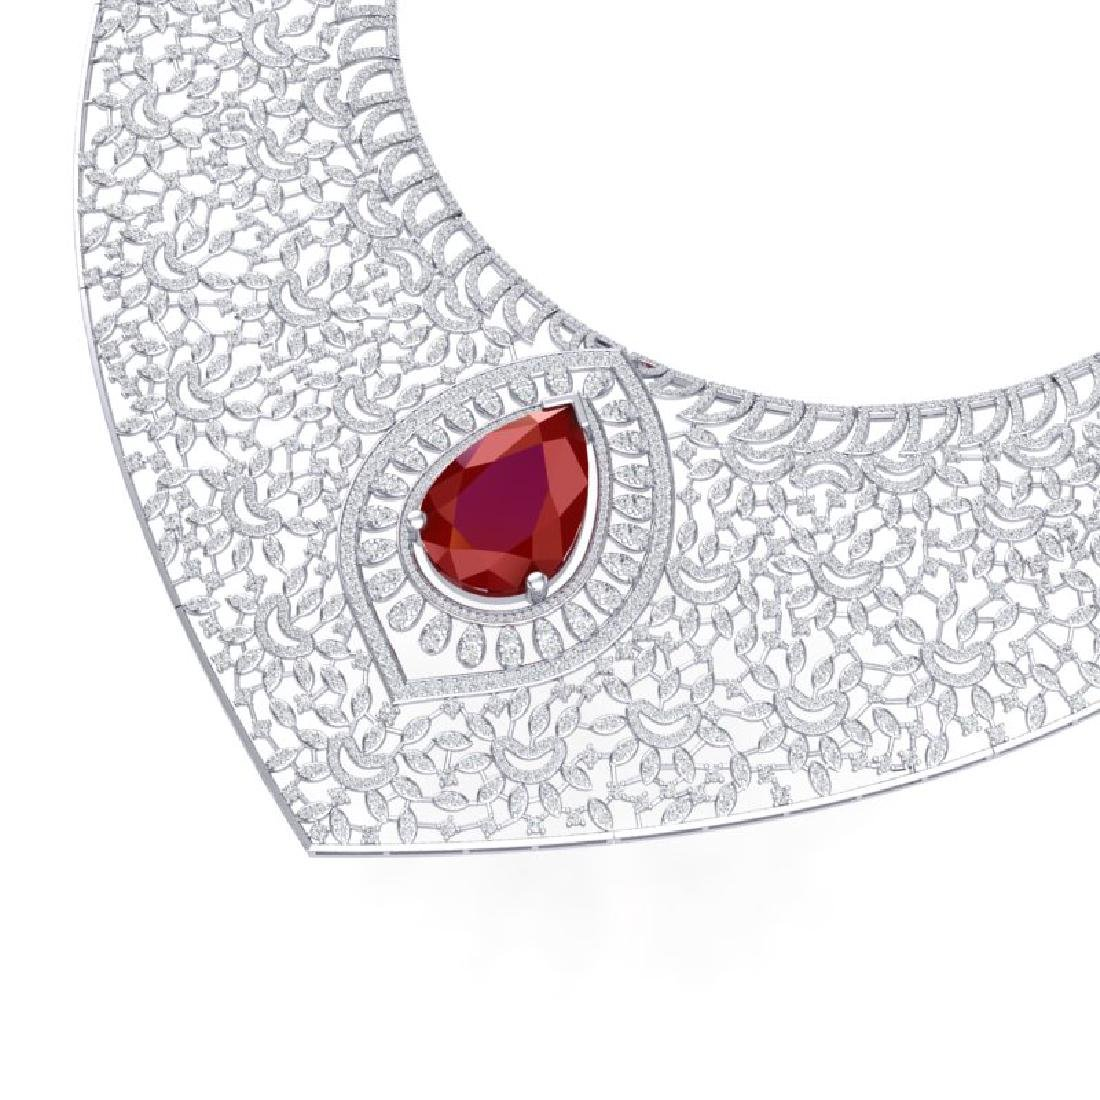 63.93 CTW Royalty Ruby & VS Diamond Necklace 18K White